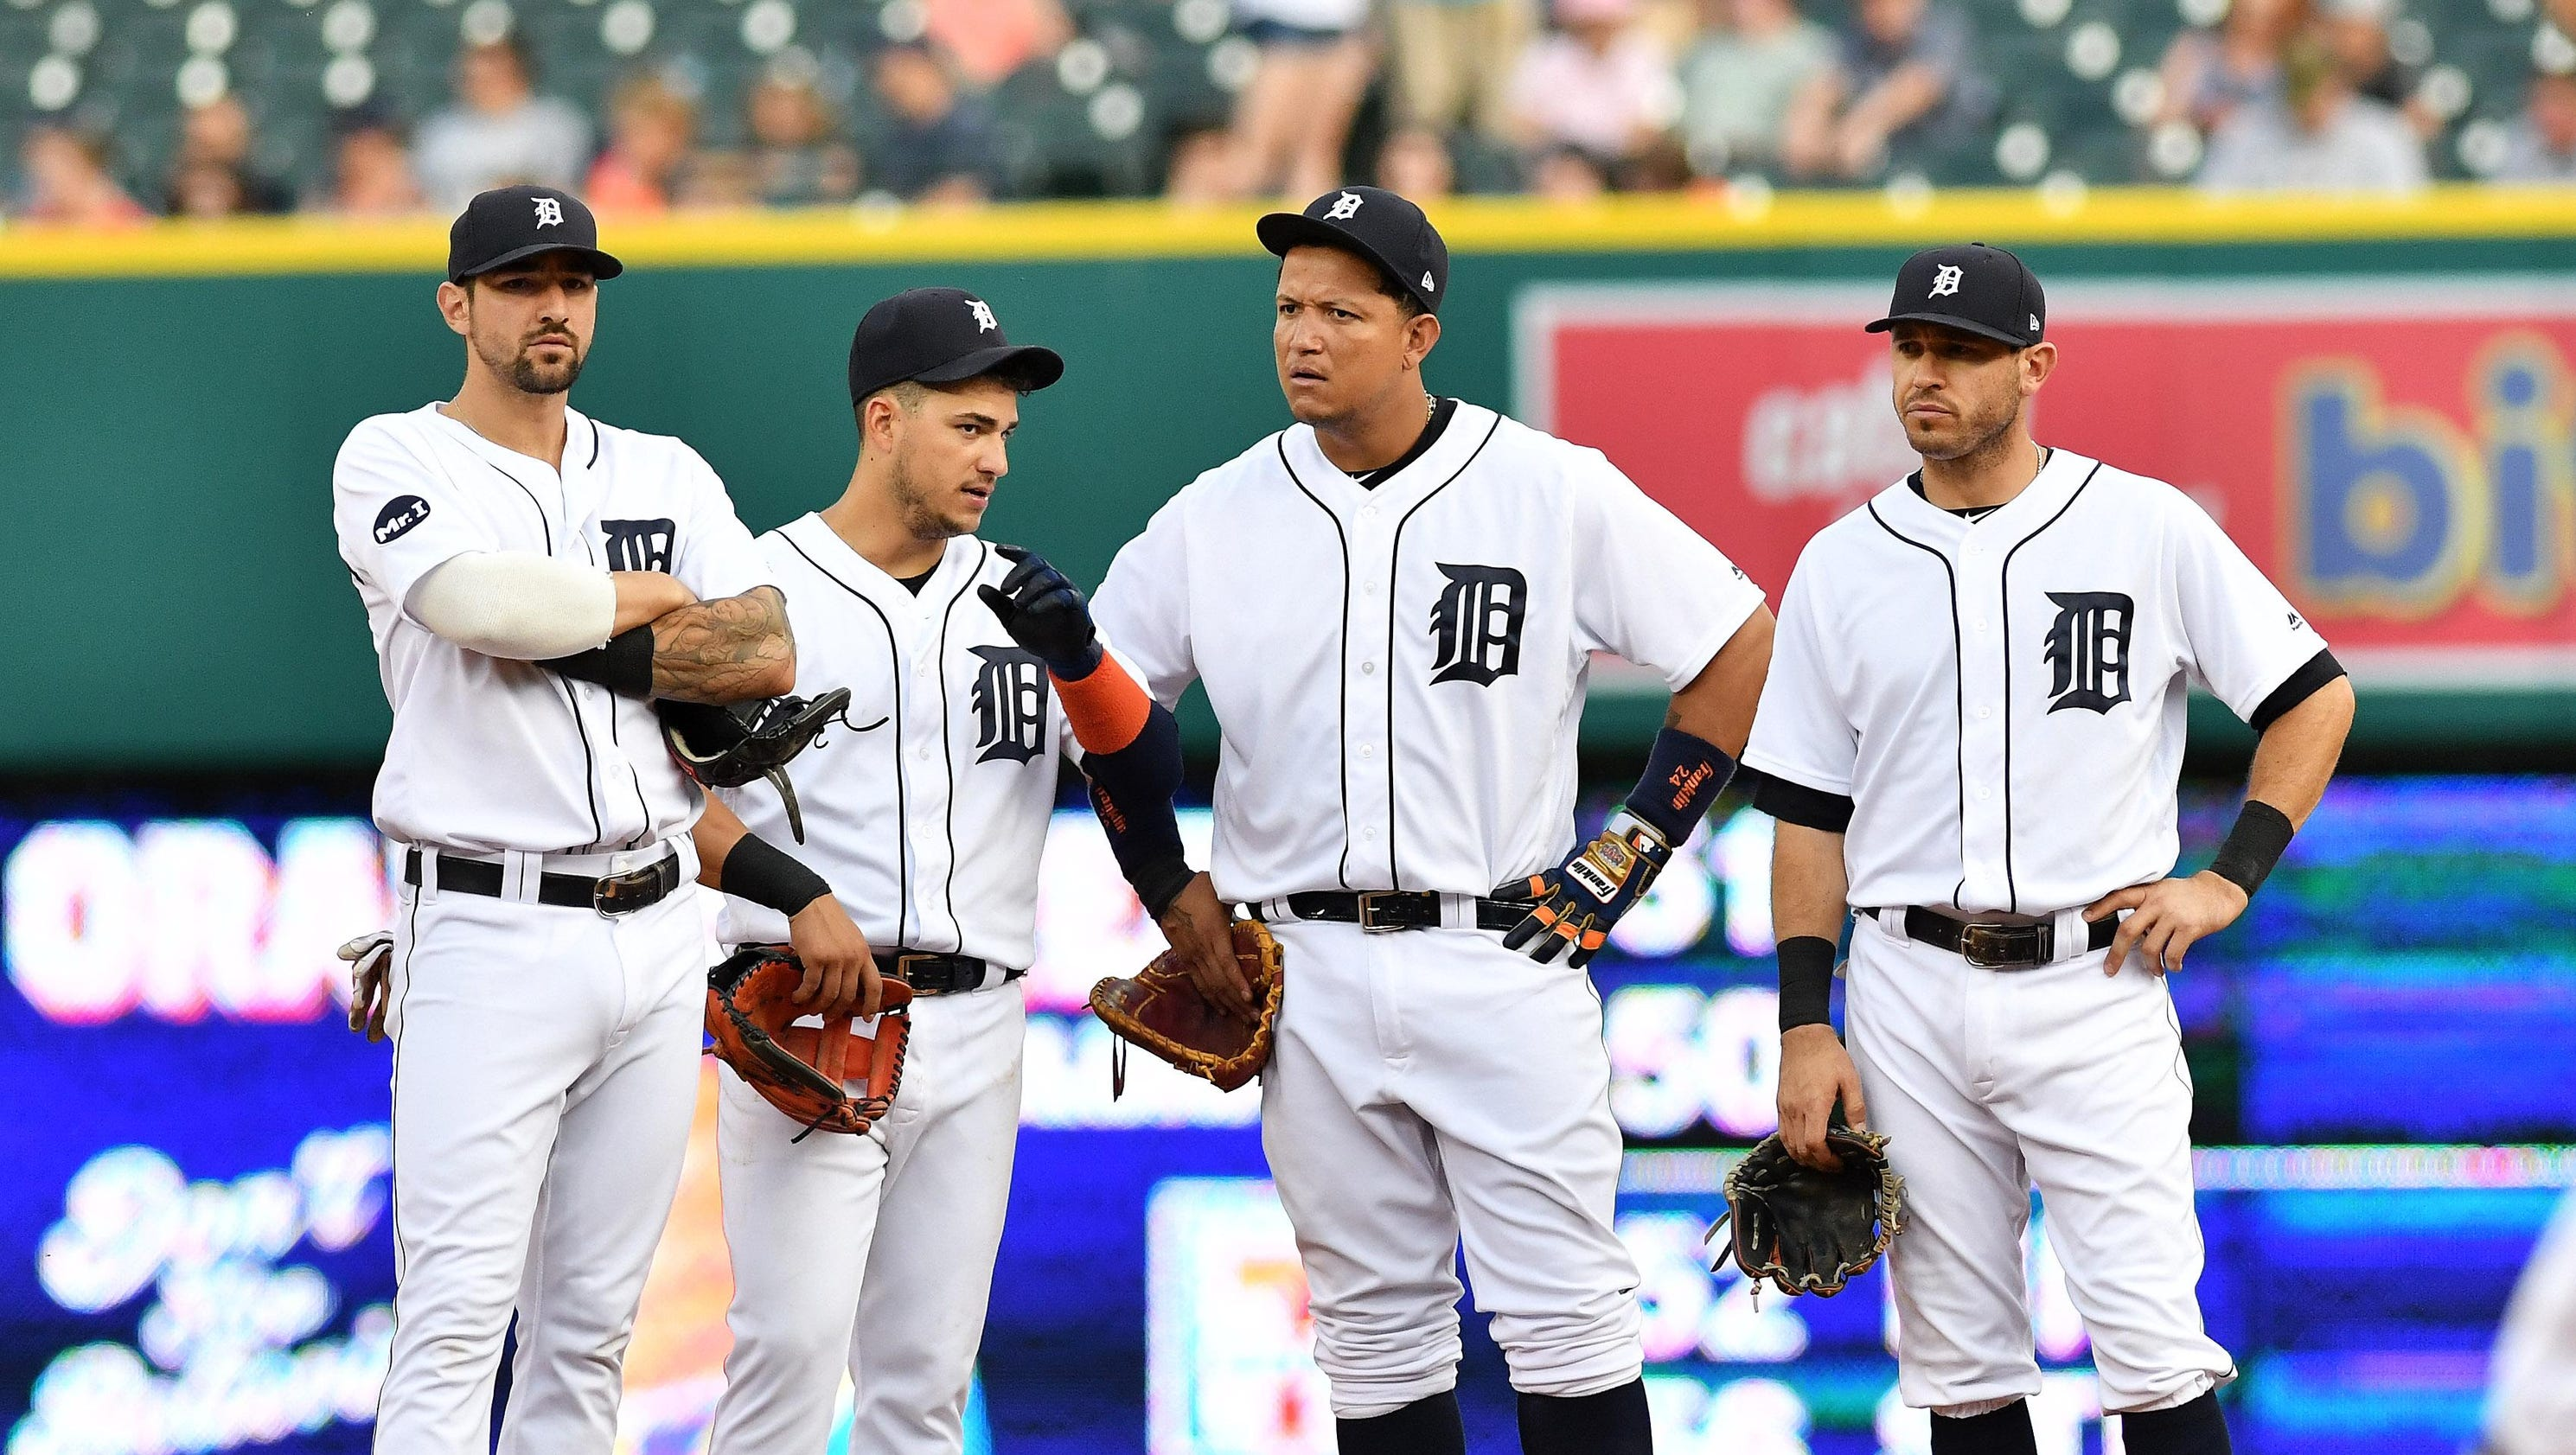 Tigers' rally wiped out by ninth-inning home run